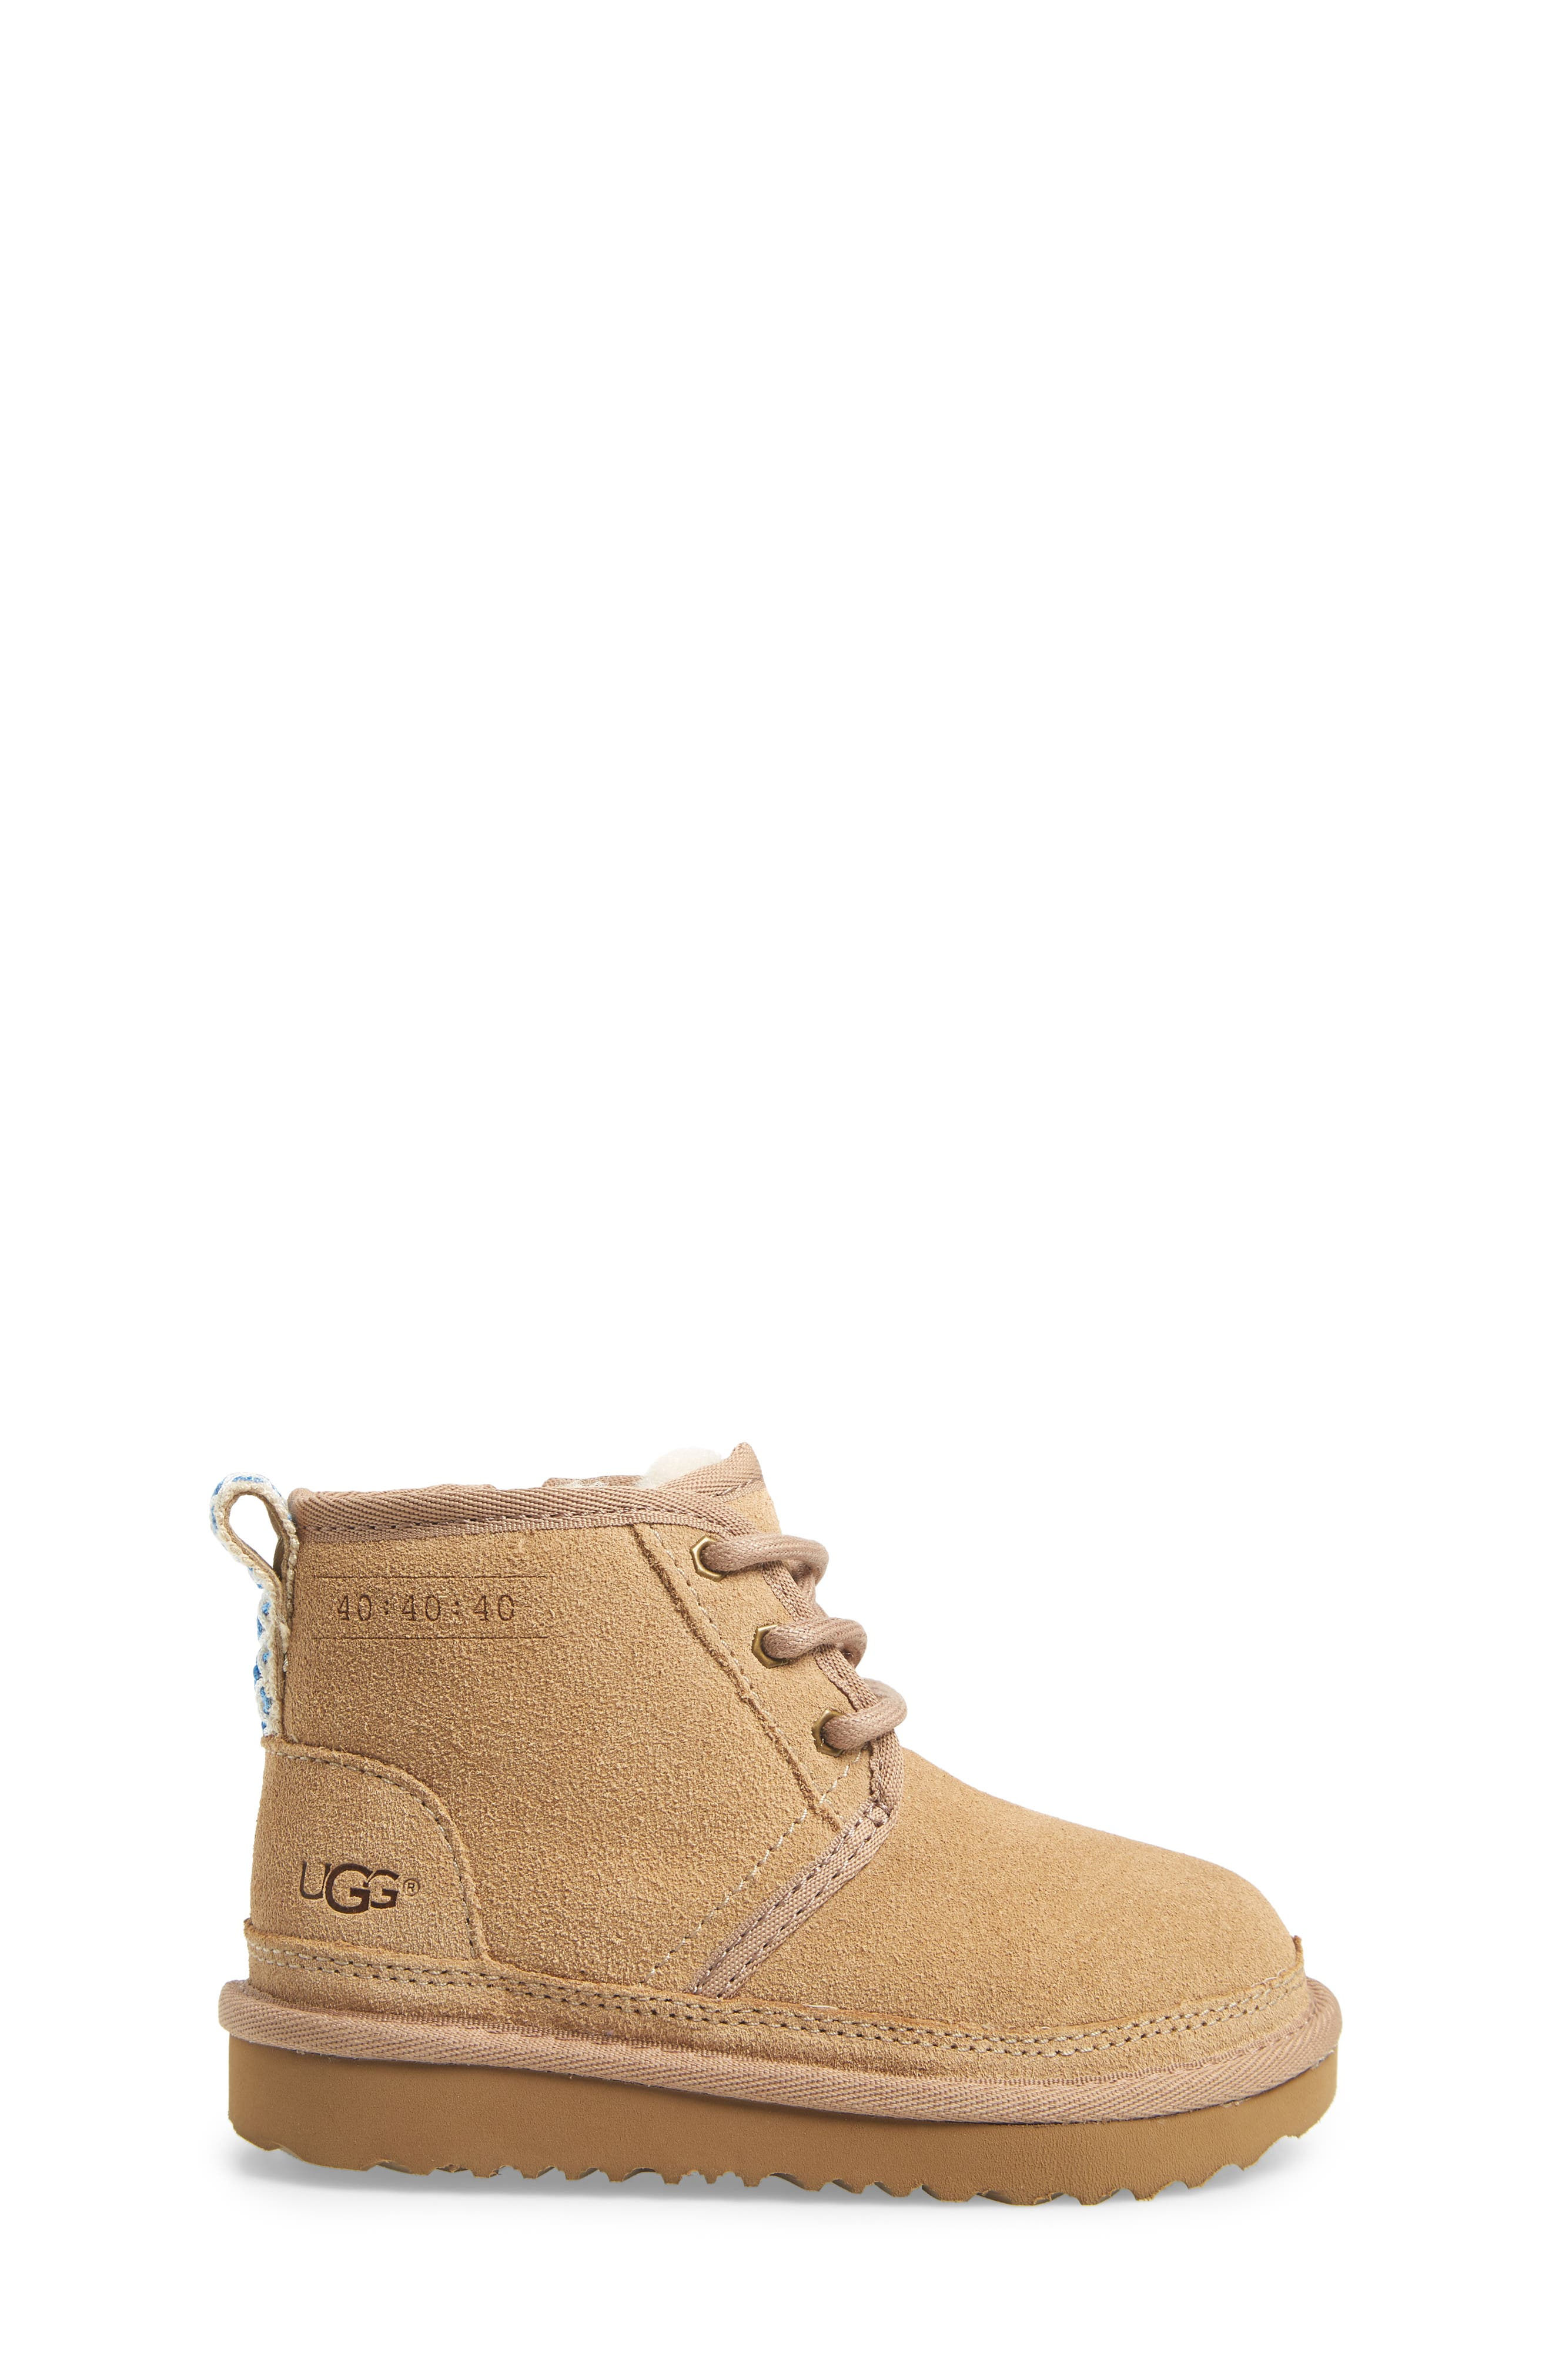 Neumel 40:40:40 Anniversary Boot,                             Alternate thumbnail 3, color,                             SAND